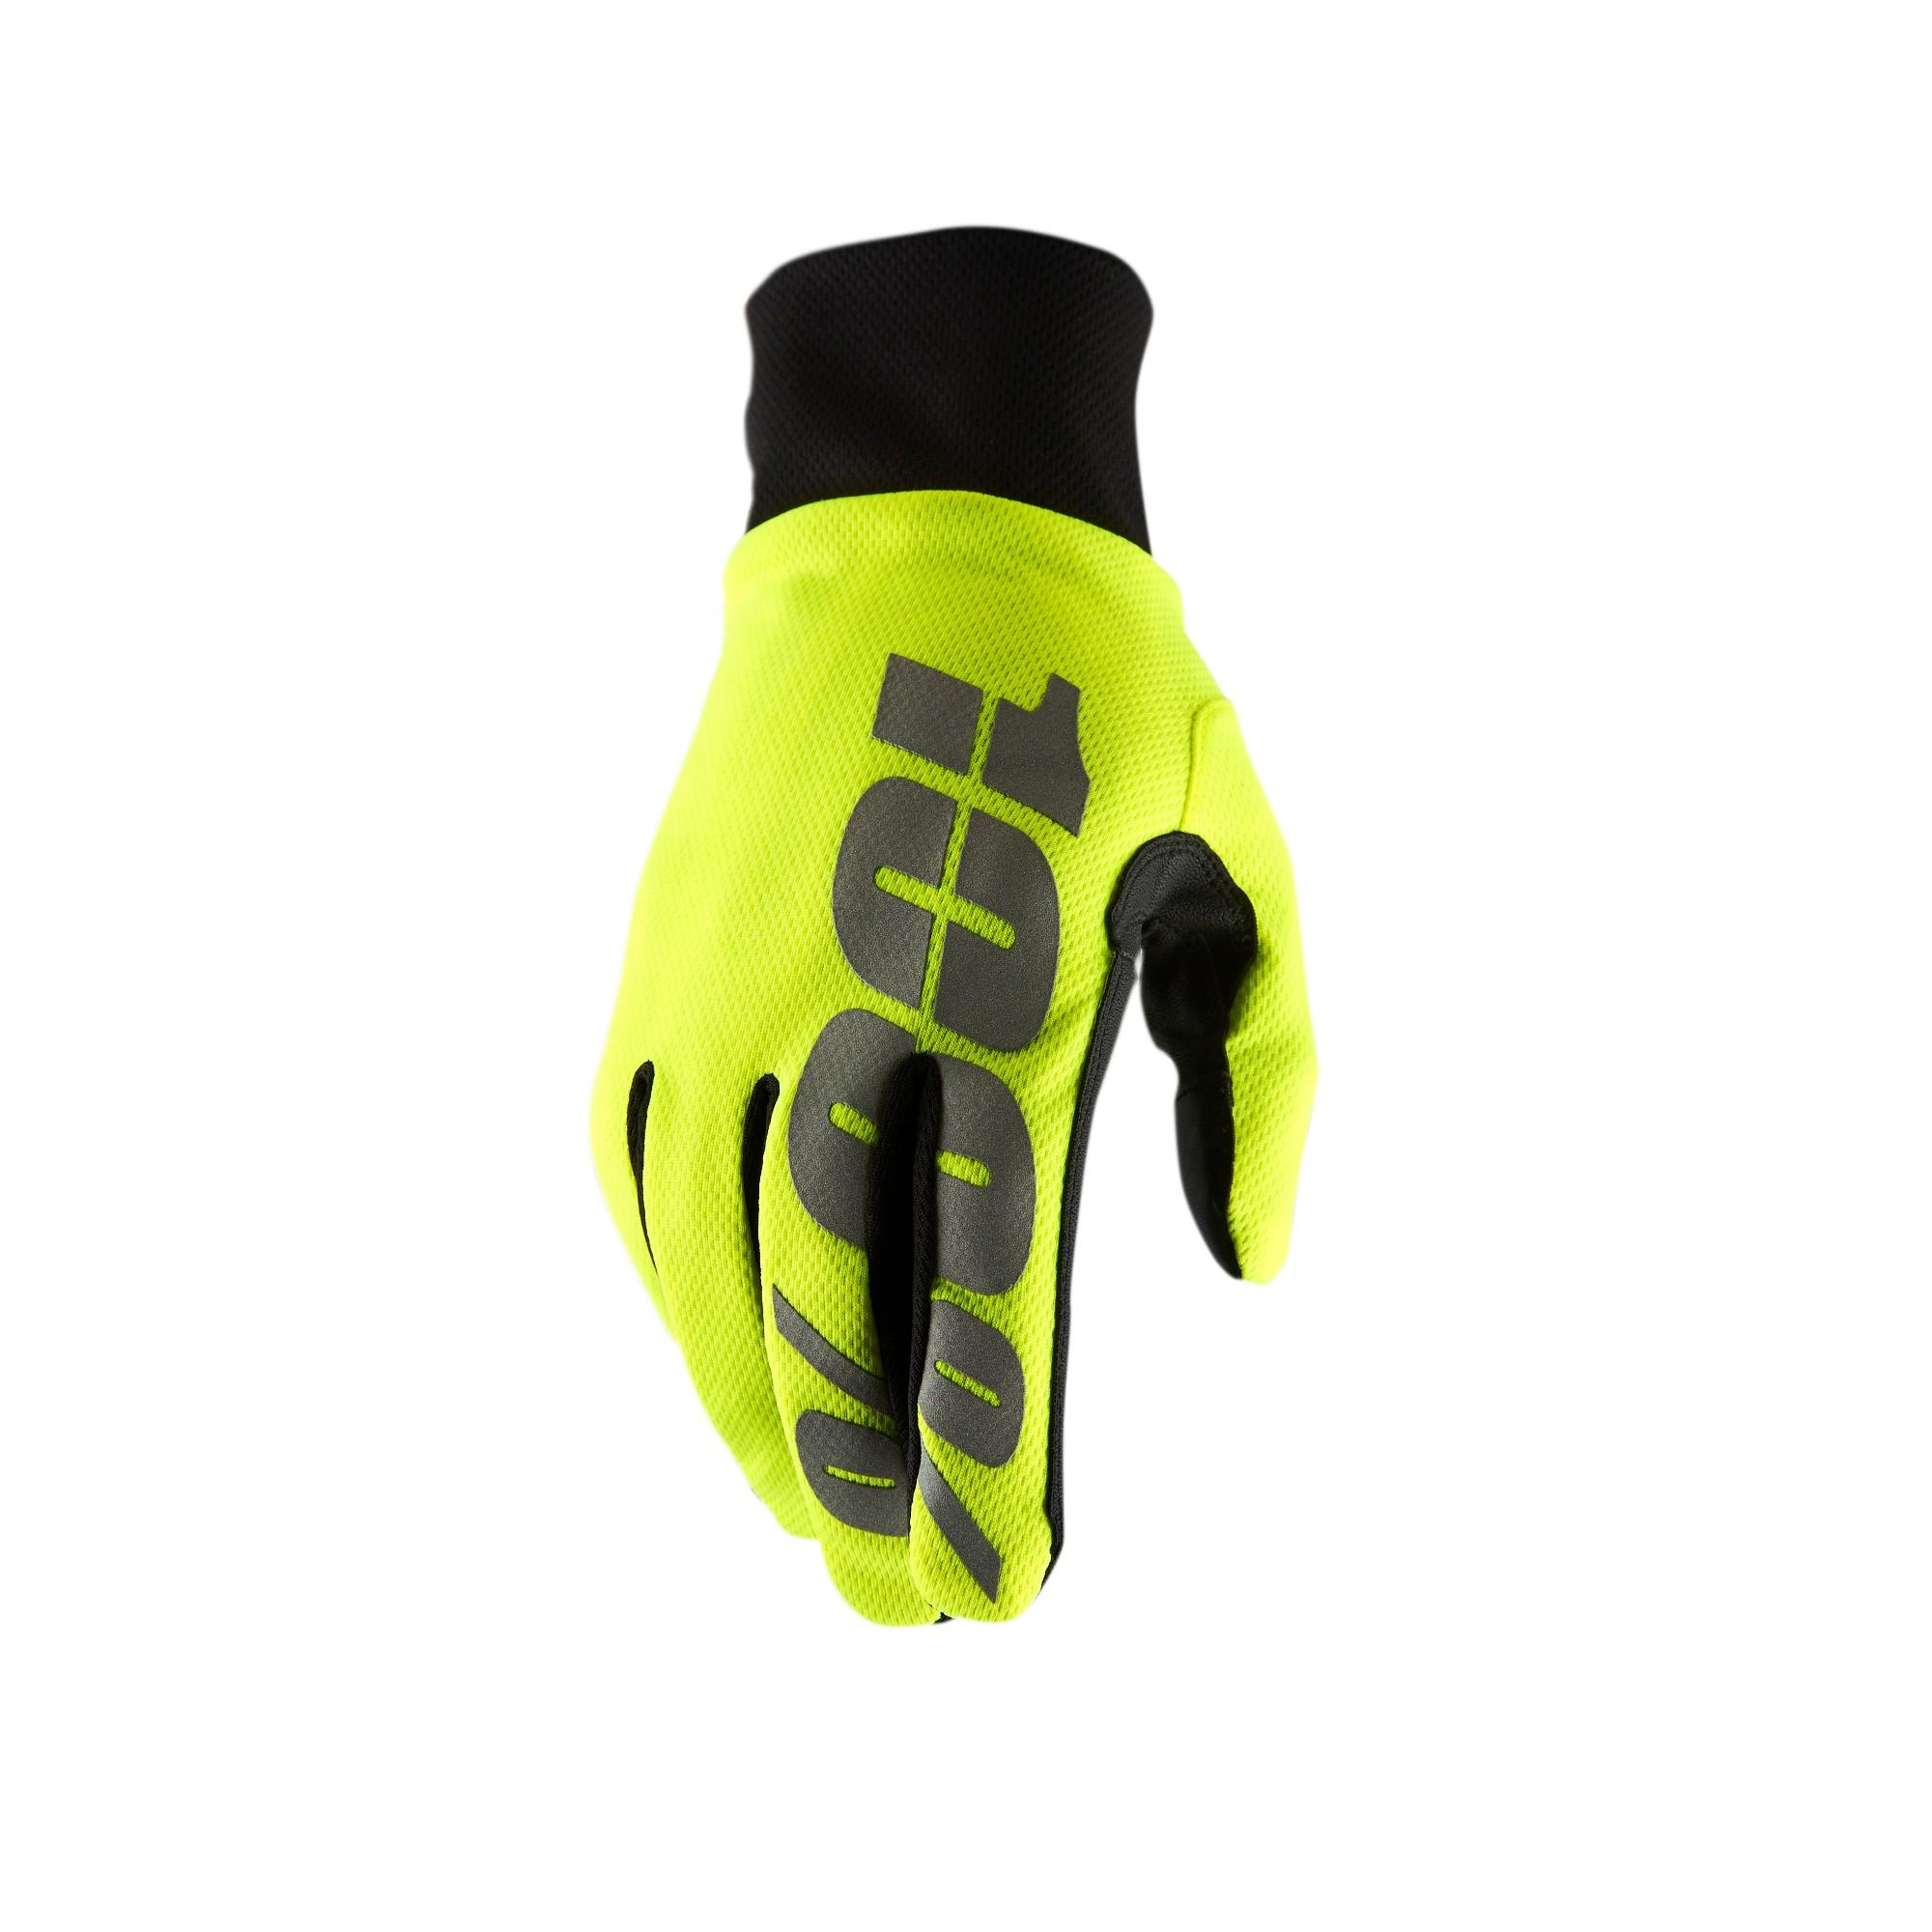 HYDROMATIC Waterproof Glove Neon Yellow